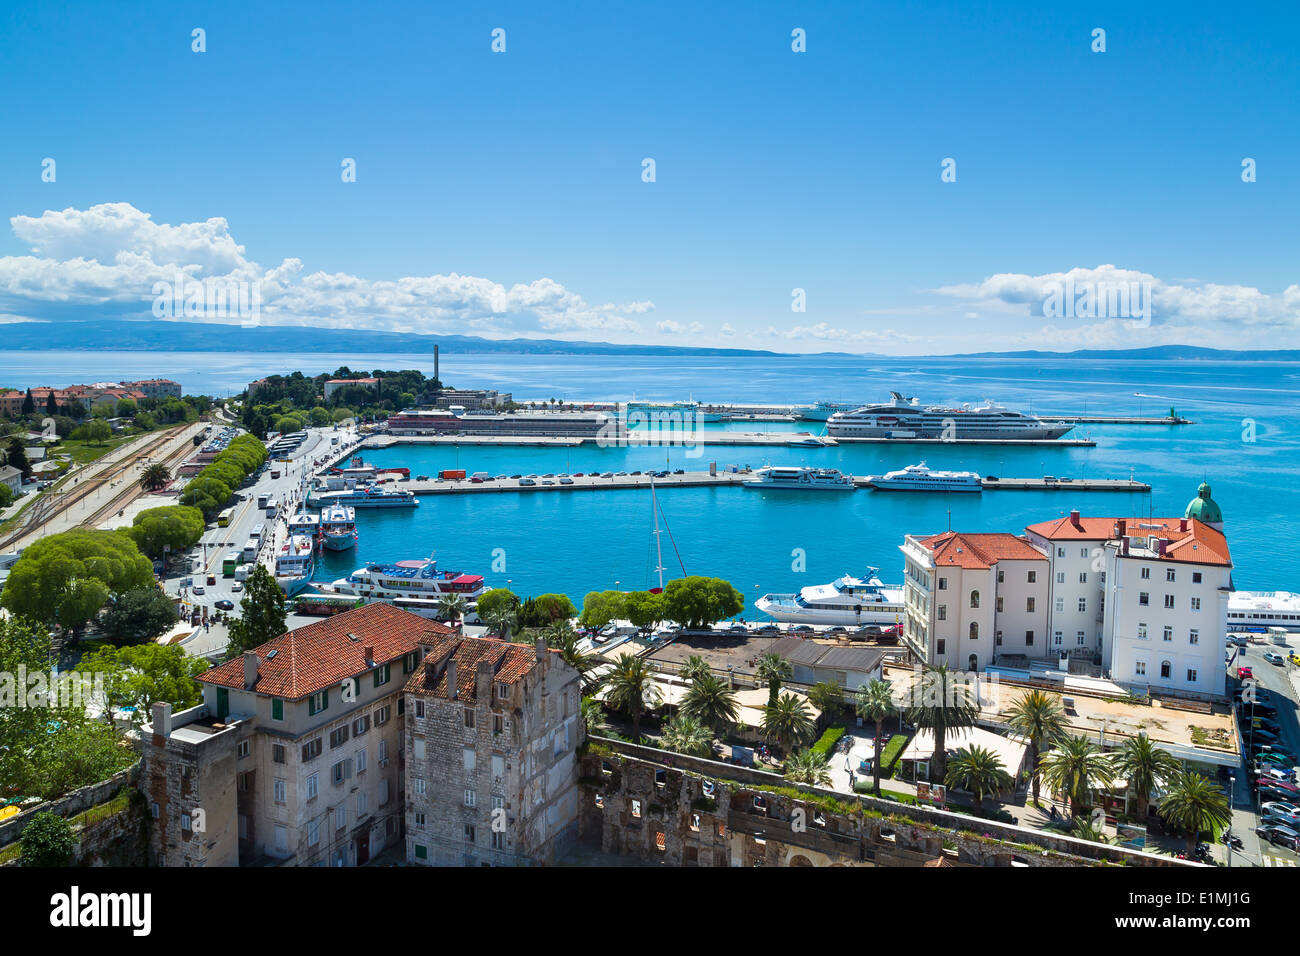 view to the South of split shows port authority building and ferry terminal. To the left is the train station and coach station - Stock Image